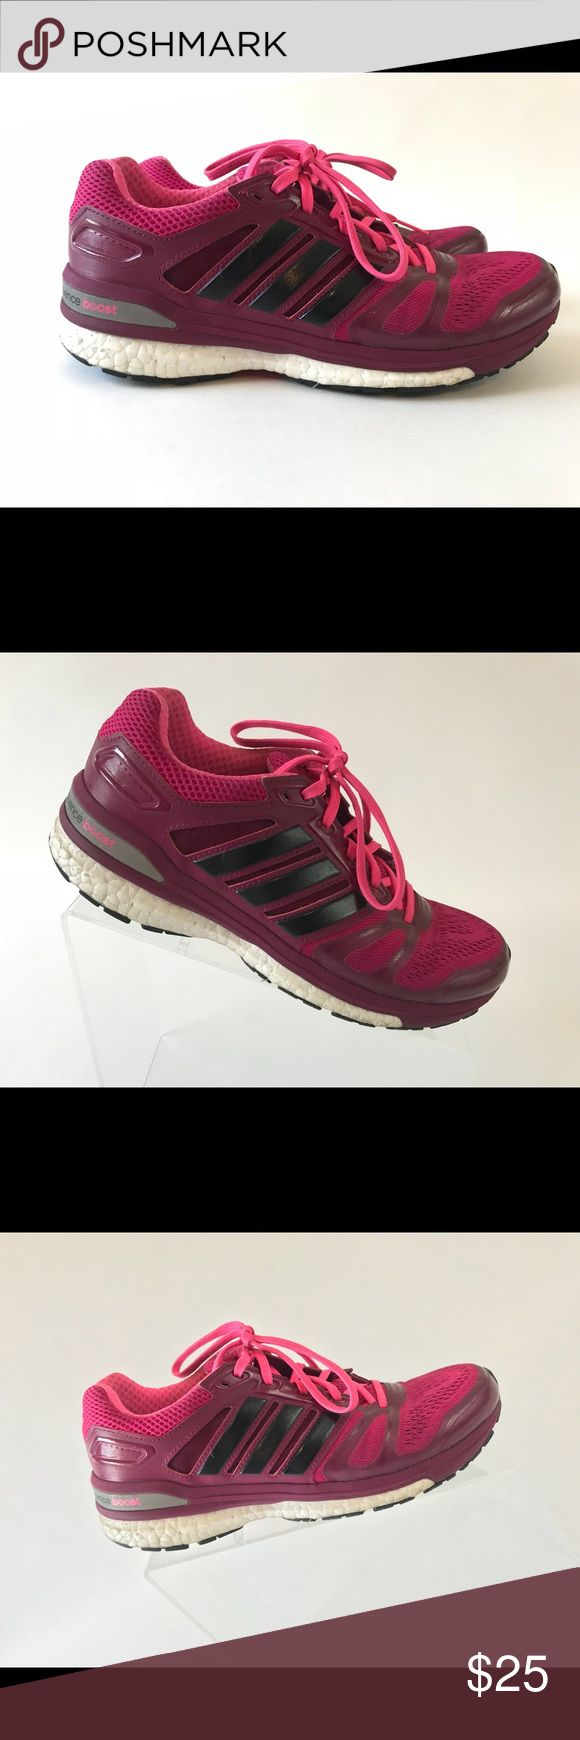 Adidas Supernova Sequence Boost Size 7.5 M Pink Adidas Supernova Sequence Boost Running Walking Shoes Size 7.5 M Pink   Condition: Very Good! Pre owned adidas Shoes Athletic Shoes